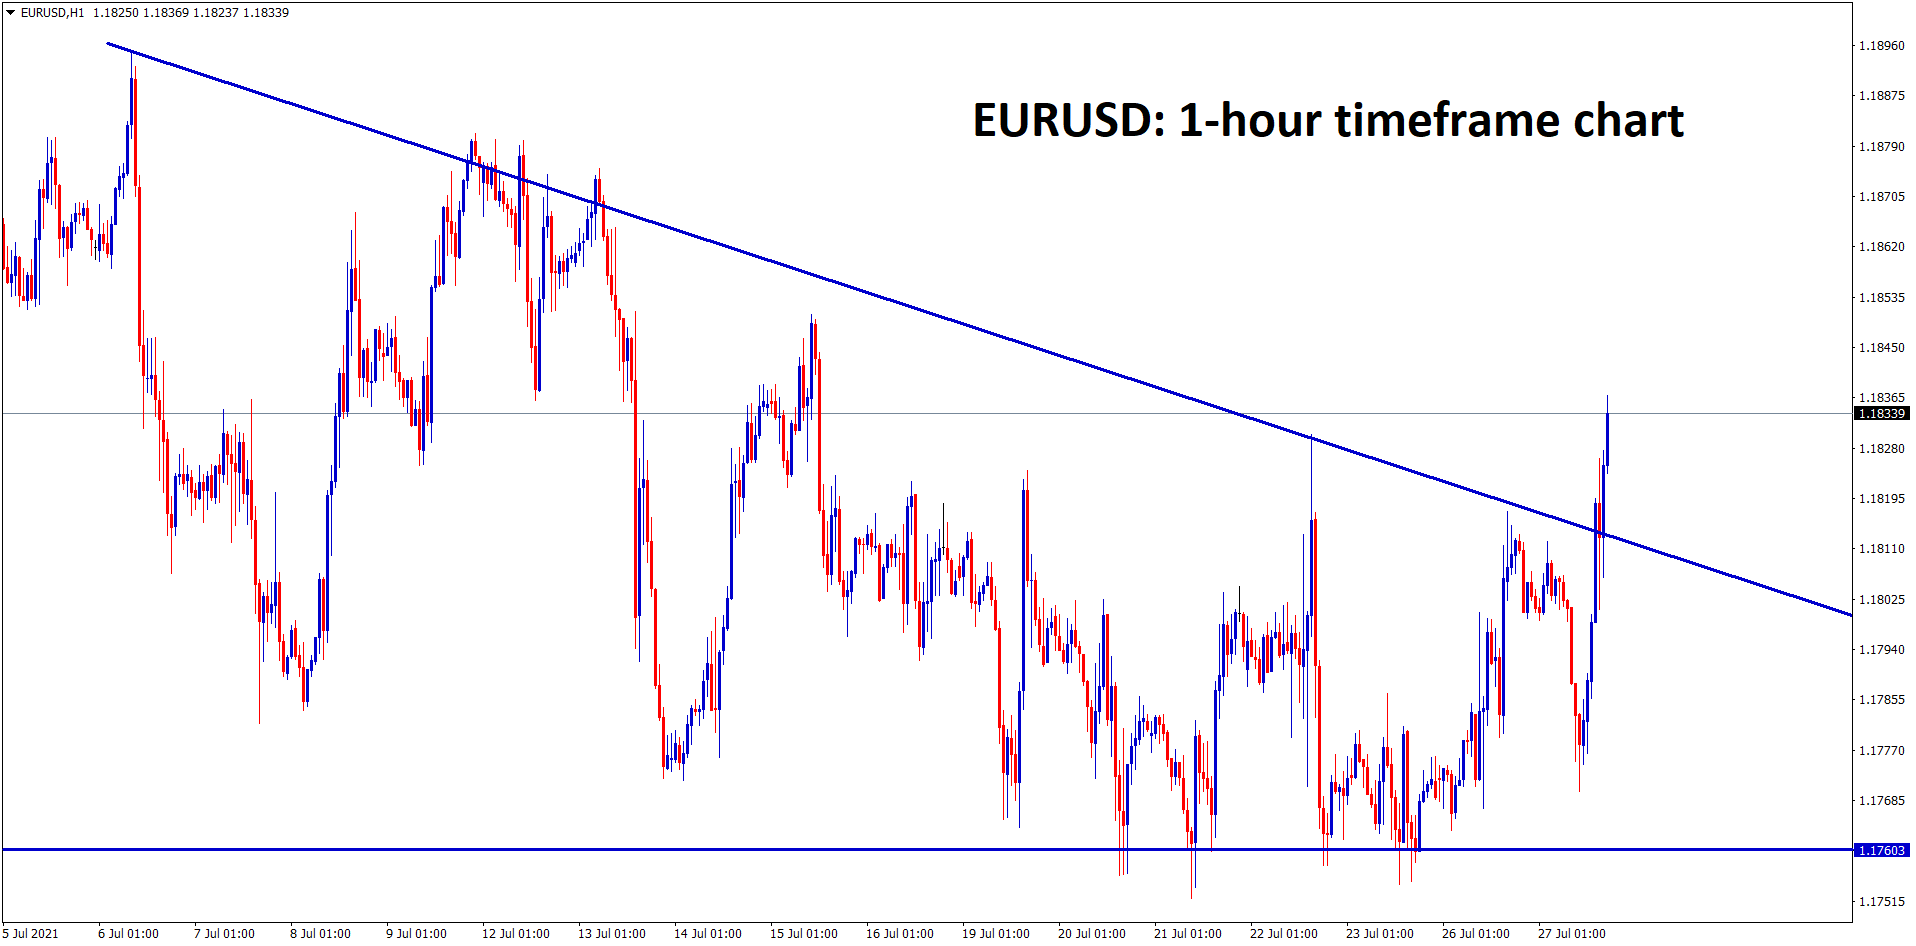 EURUSD is ranging and its trying to break the top of the falling wedge pattern